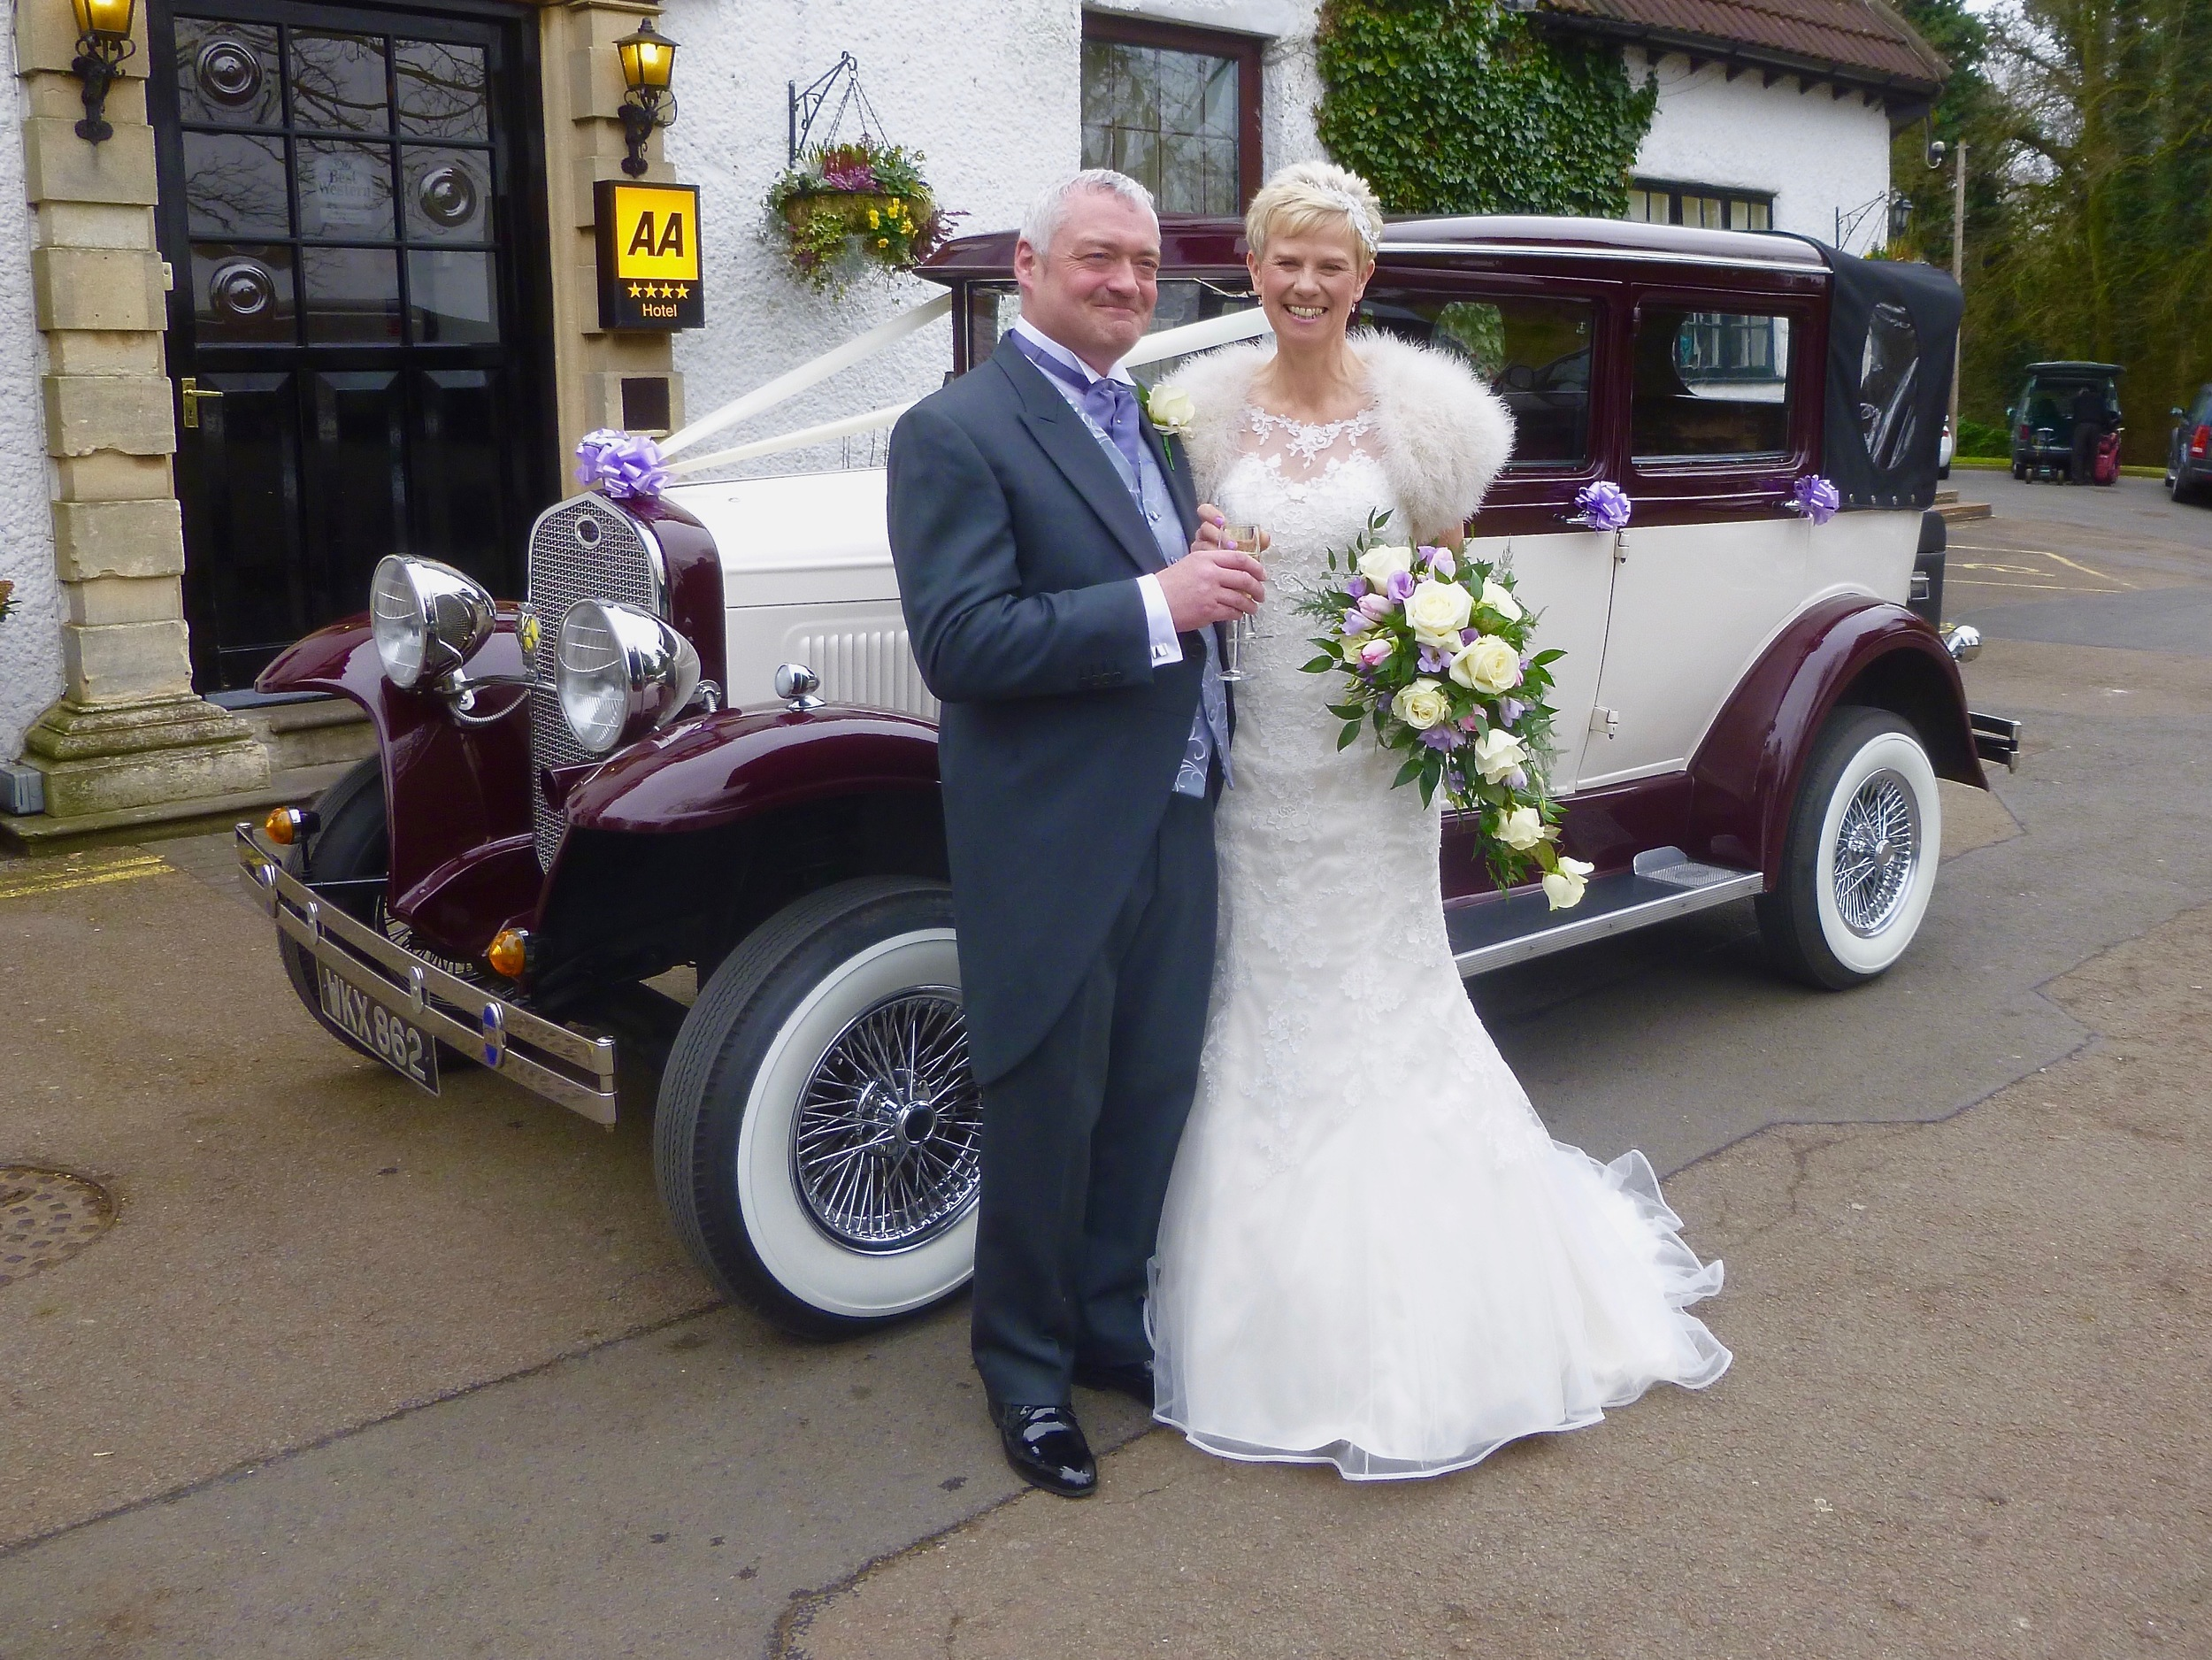 Colin and Kerrie enjoy a toast following their Wedding Ceremony at  Ullesthorpe Court Hotel.  A lovely relaxing occasion in a beautiful setting. Congratulations to the happy couple.